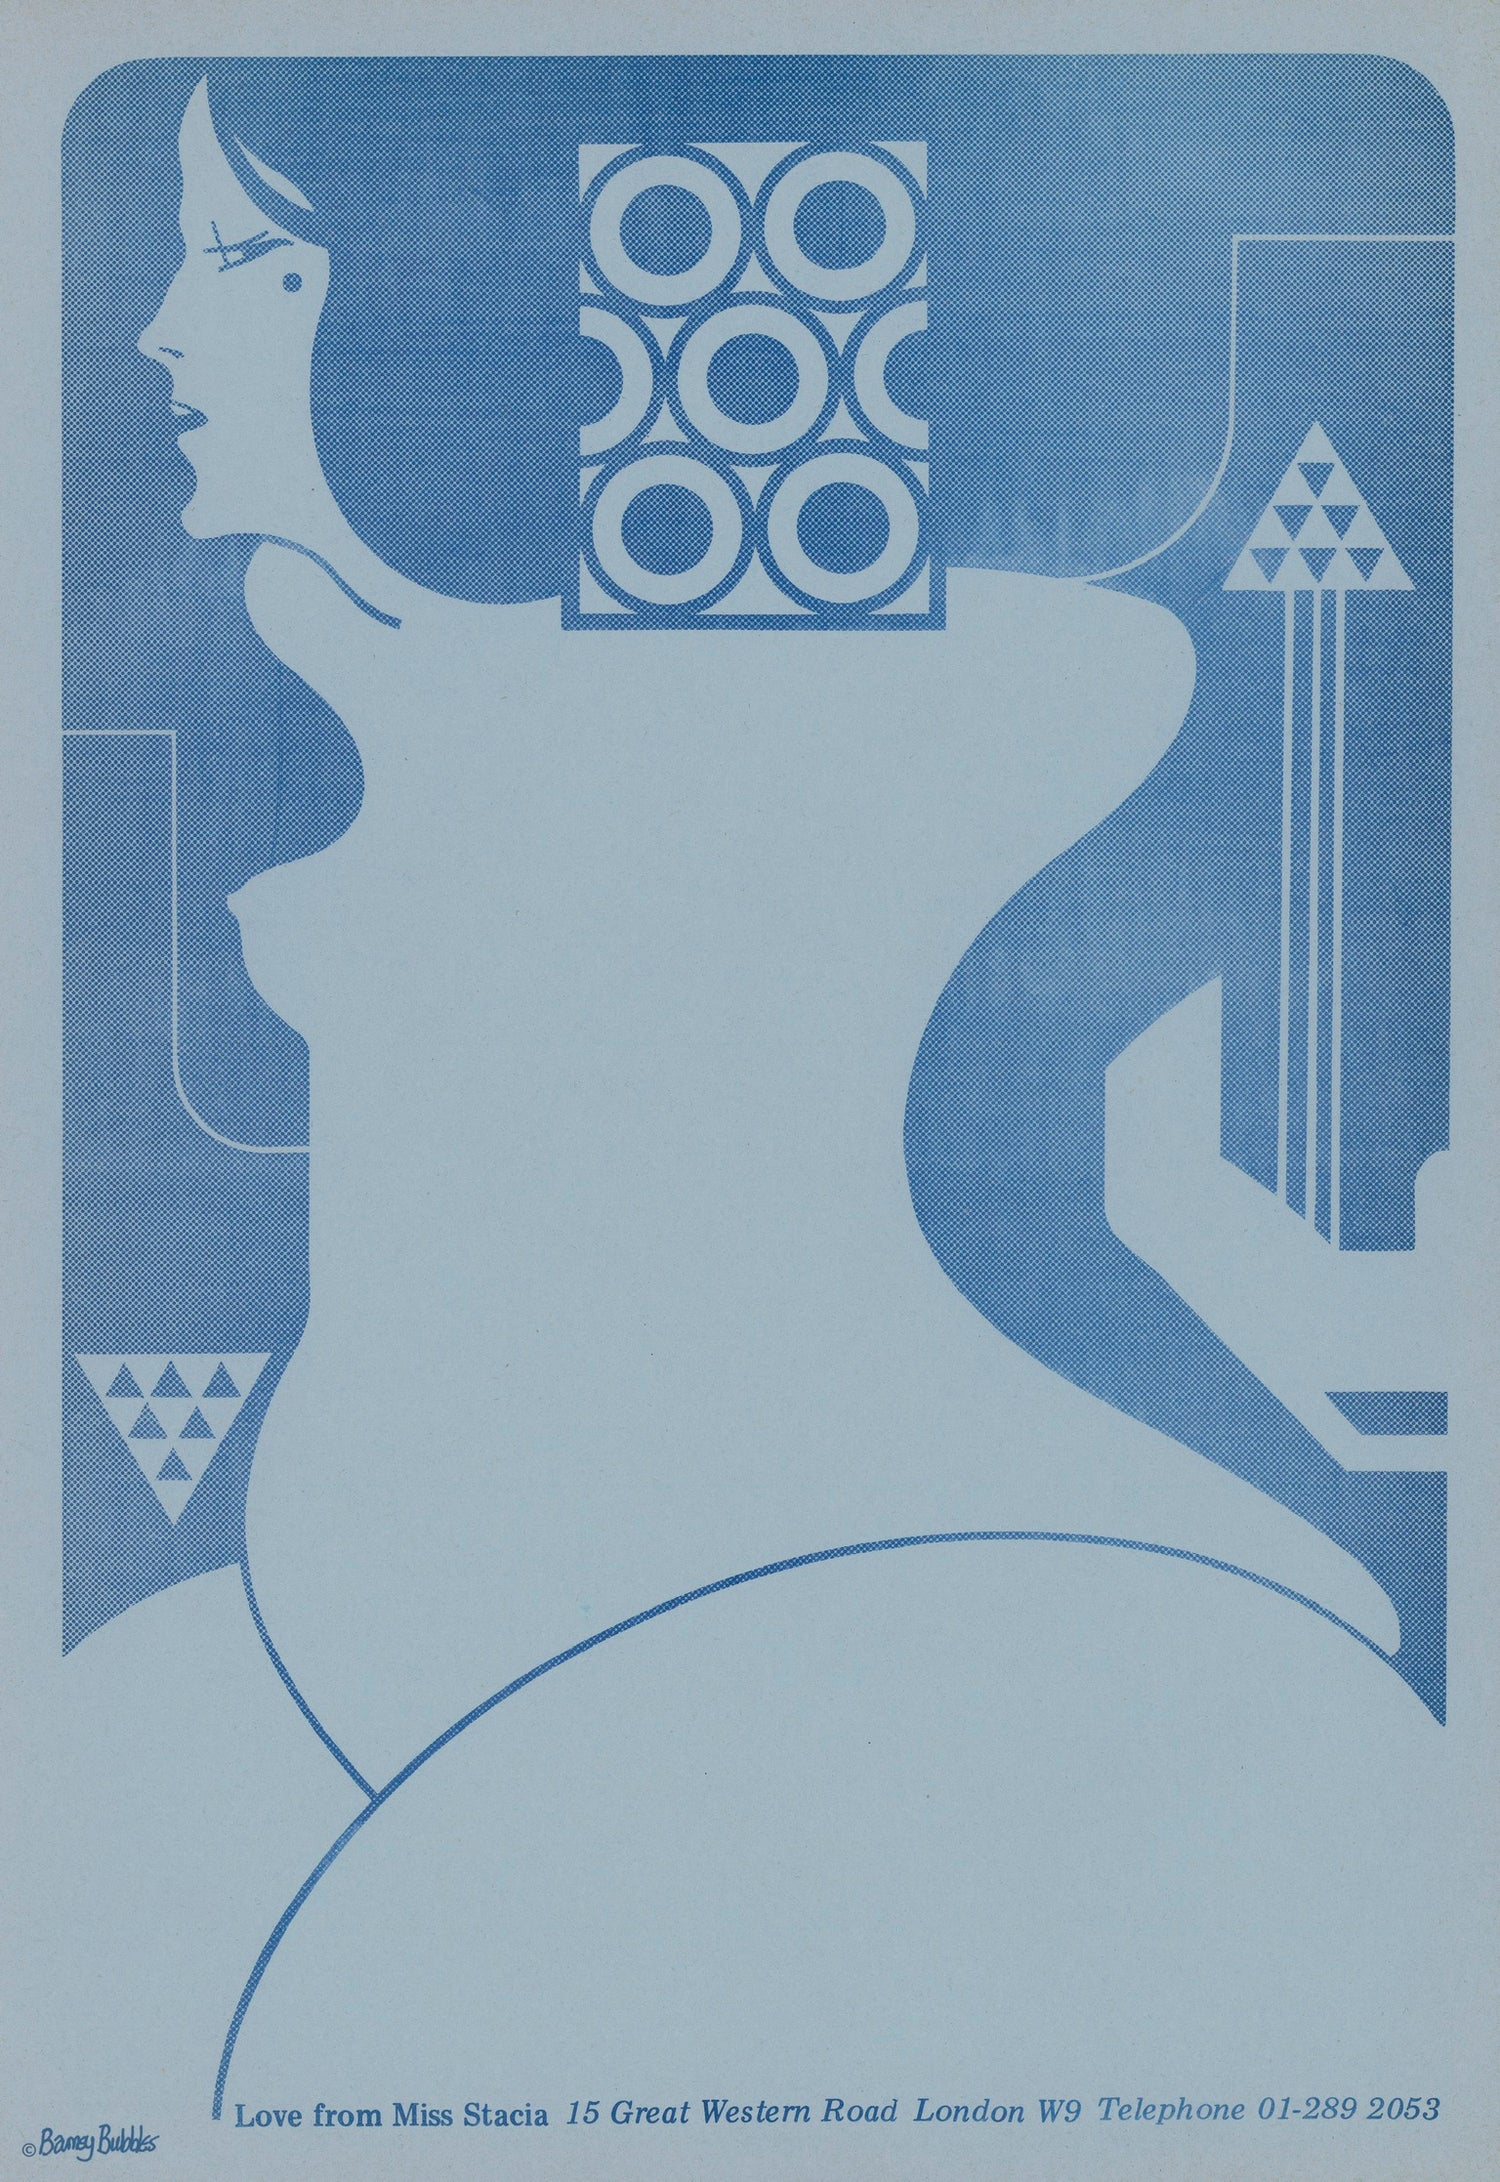 Image of 'Love from Miss Stacia' Poster - Barney Bubbles Design (Hawkwind)